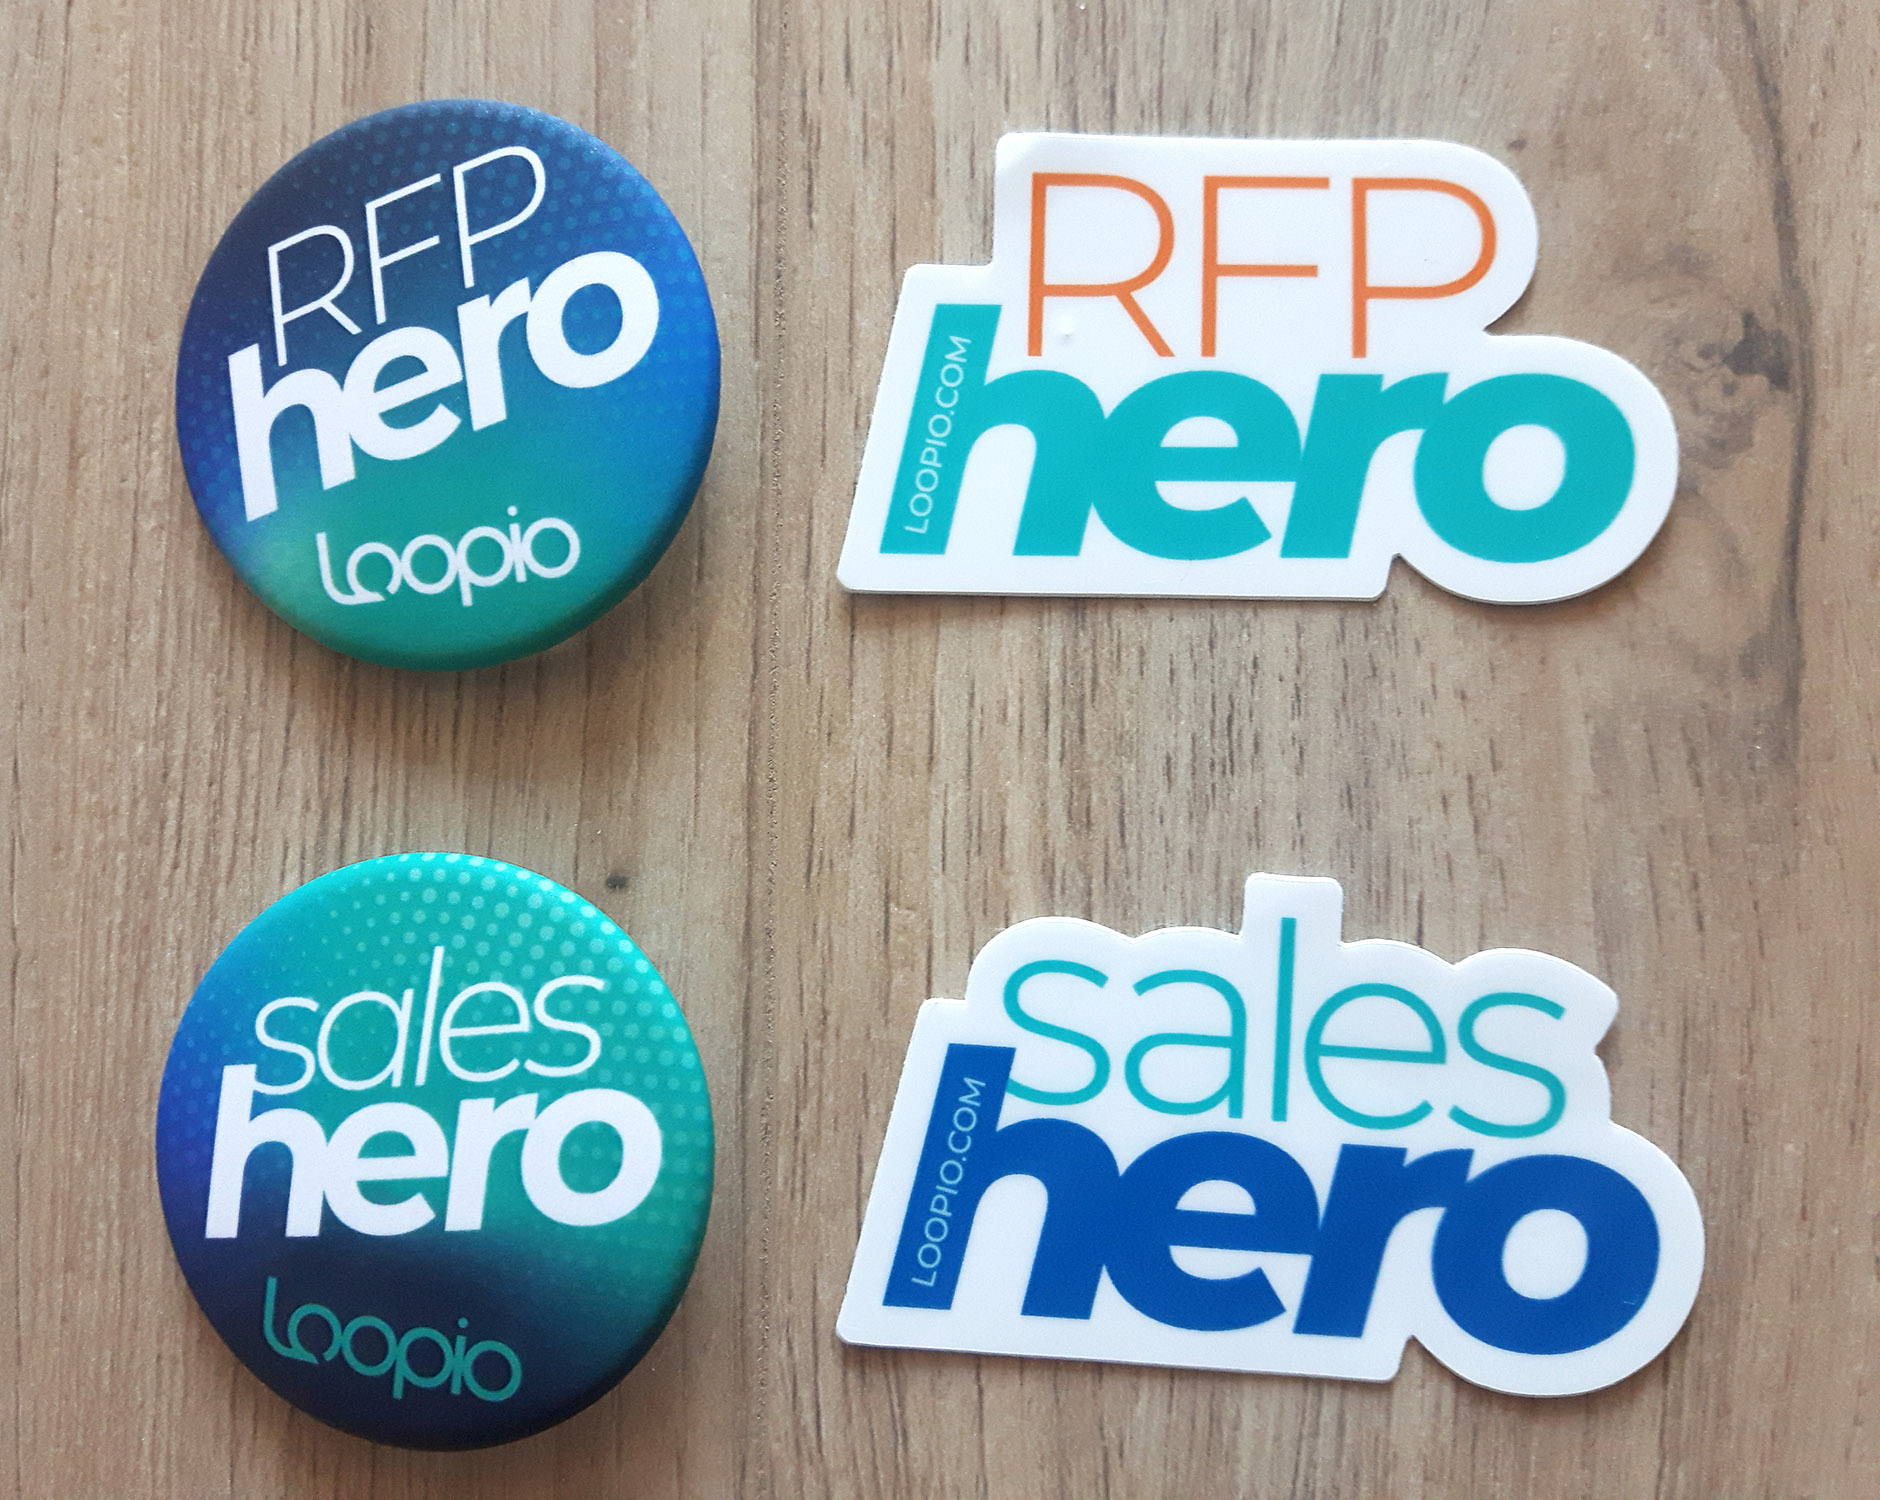 Two pins and two stickers for RFP and Sales Heroes